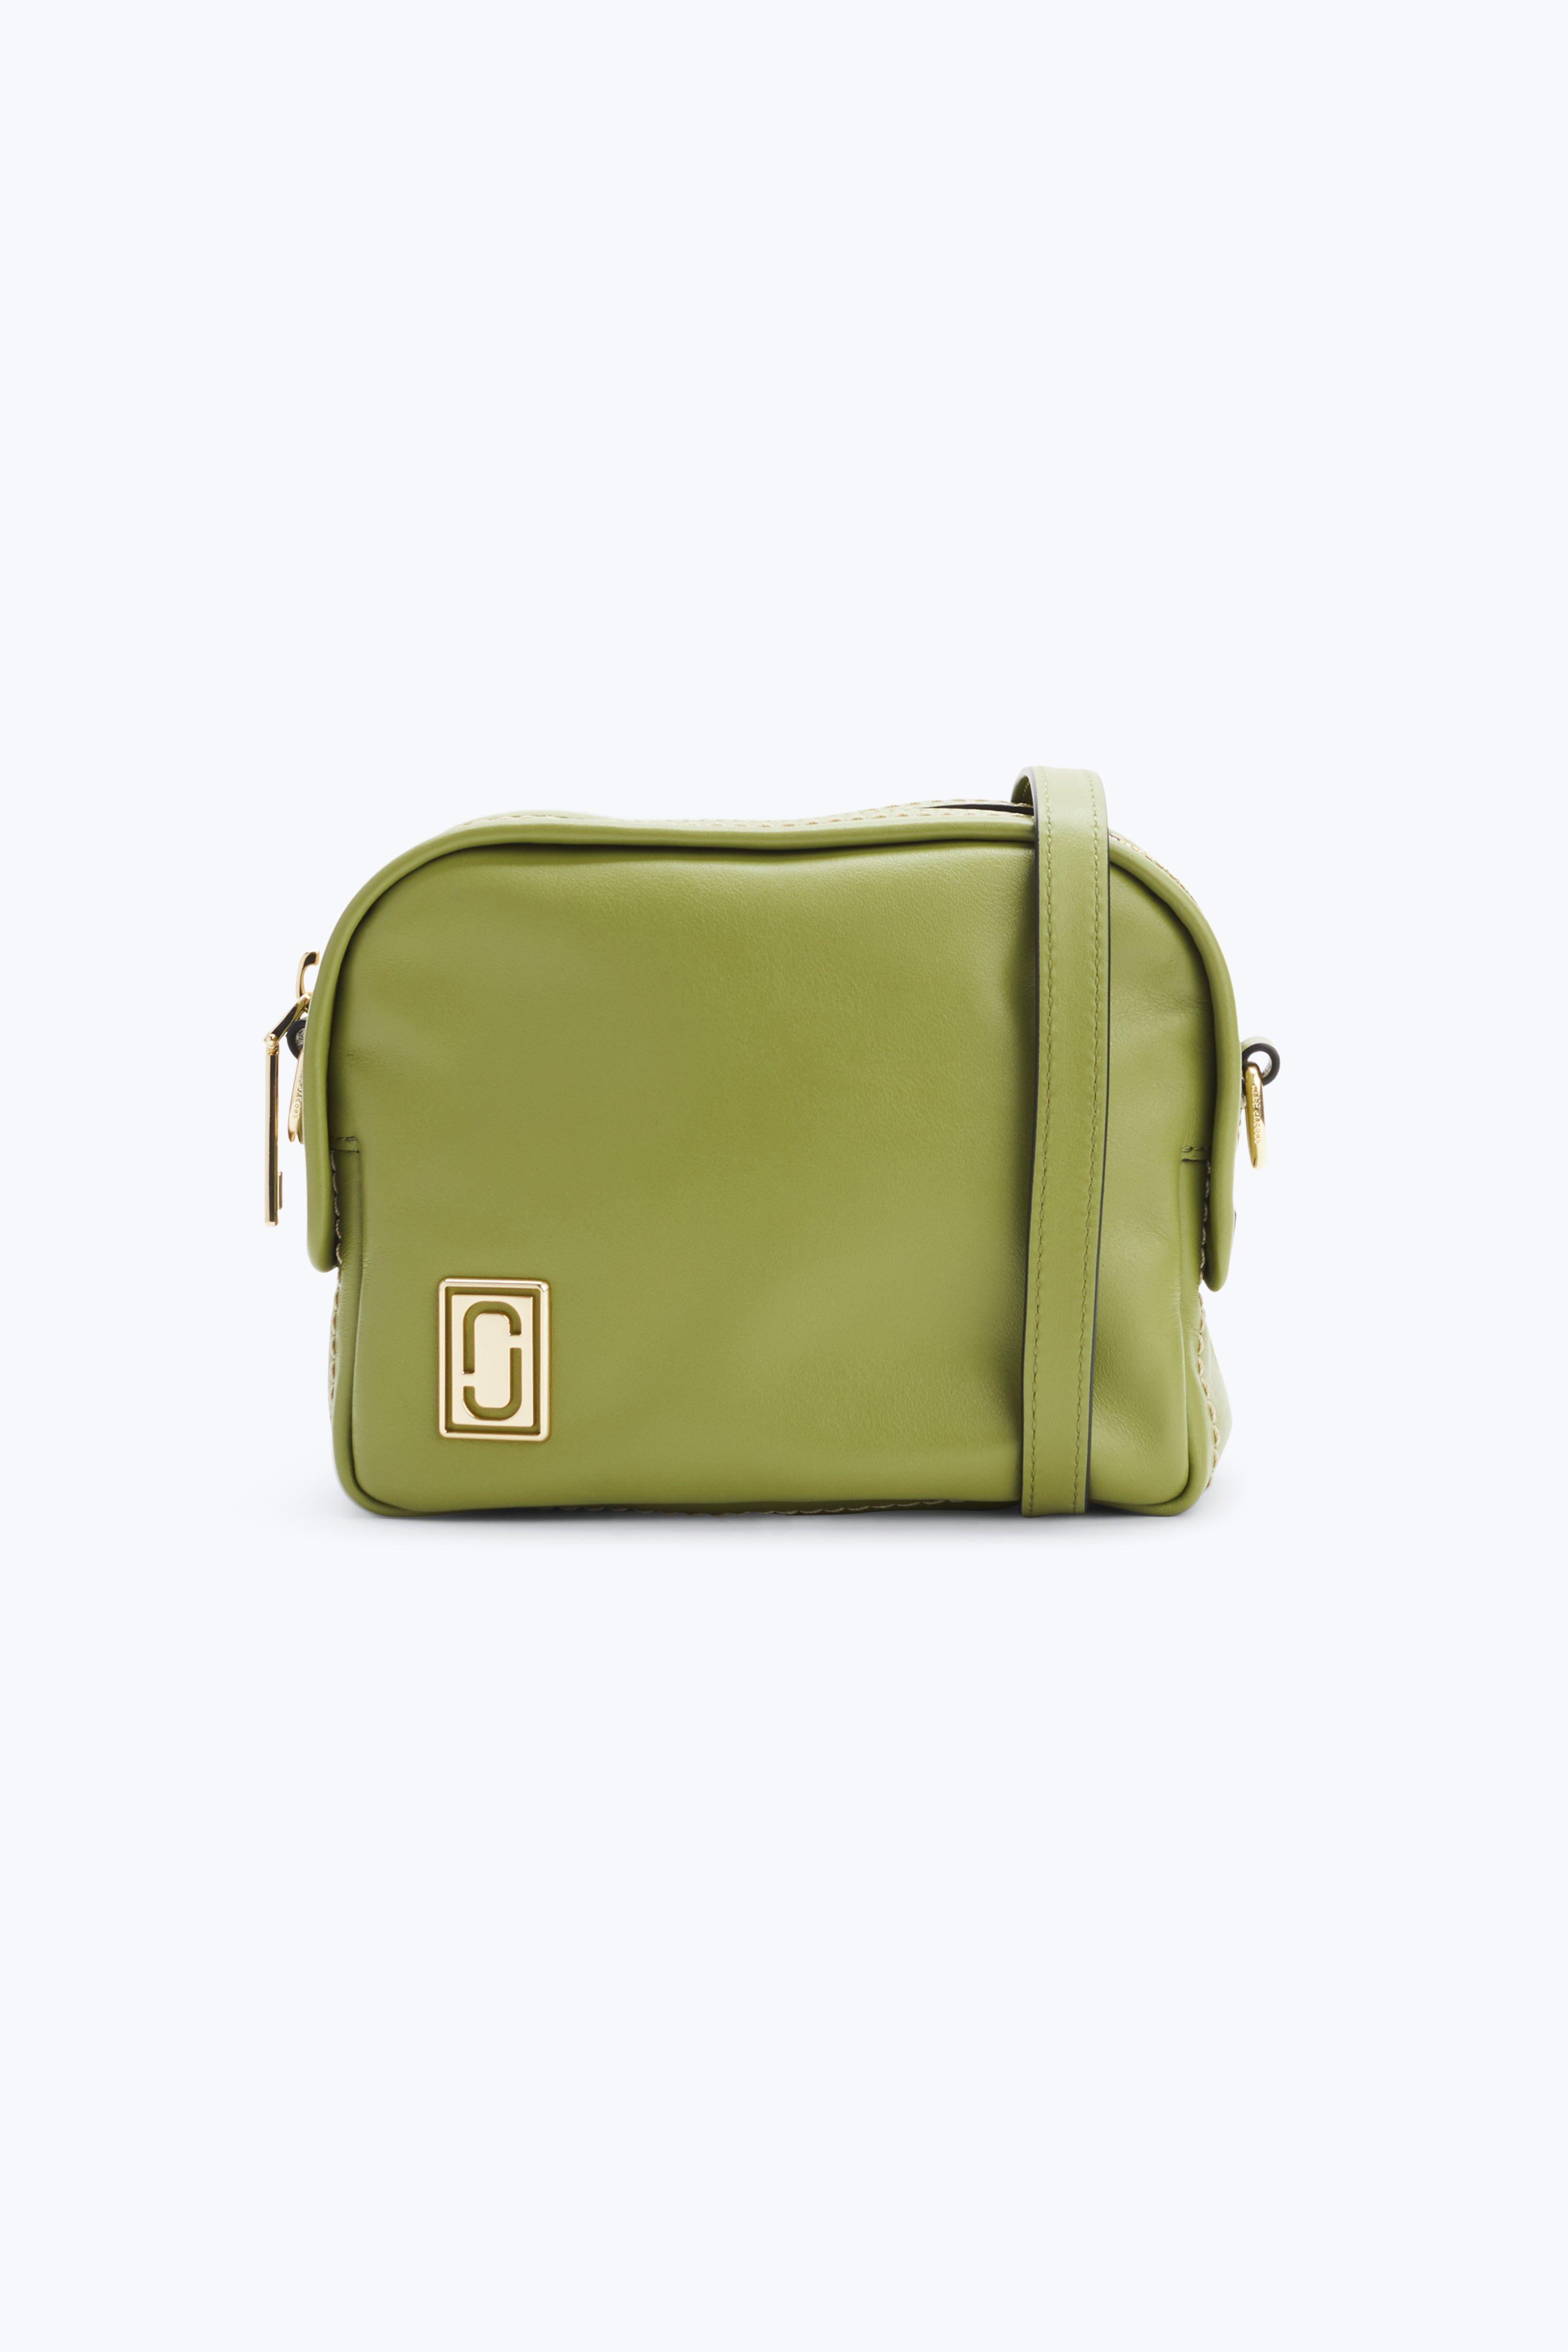 5582f9733e83 Marc Jacobs The Mini Squeeze Bag In Shady Green